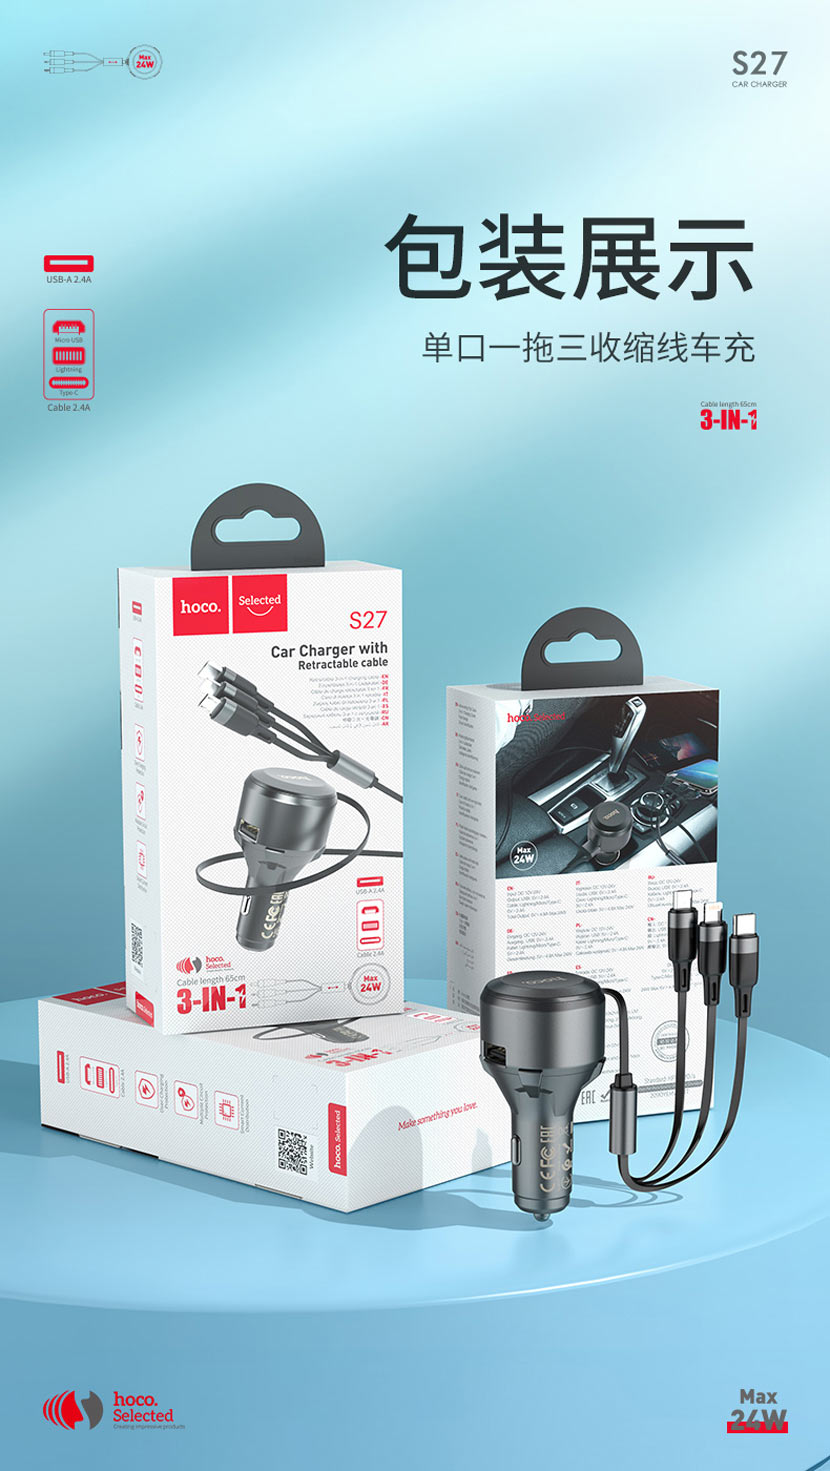 hoco selected news s27 tributo single port car charger with 3in1 cable package cn